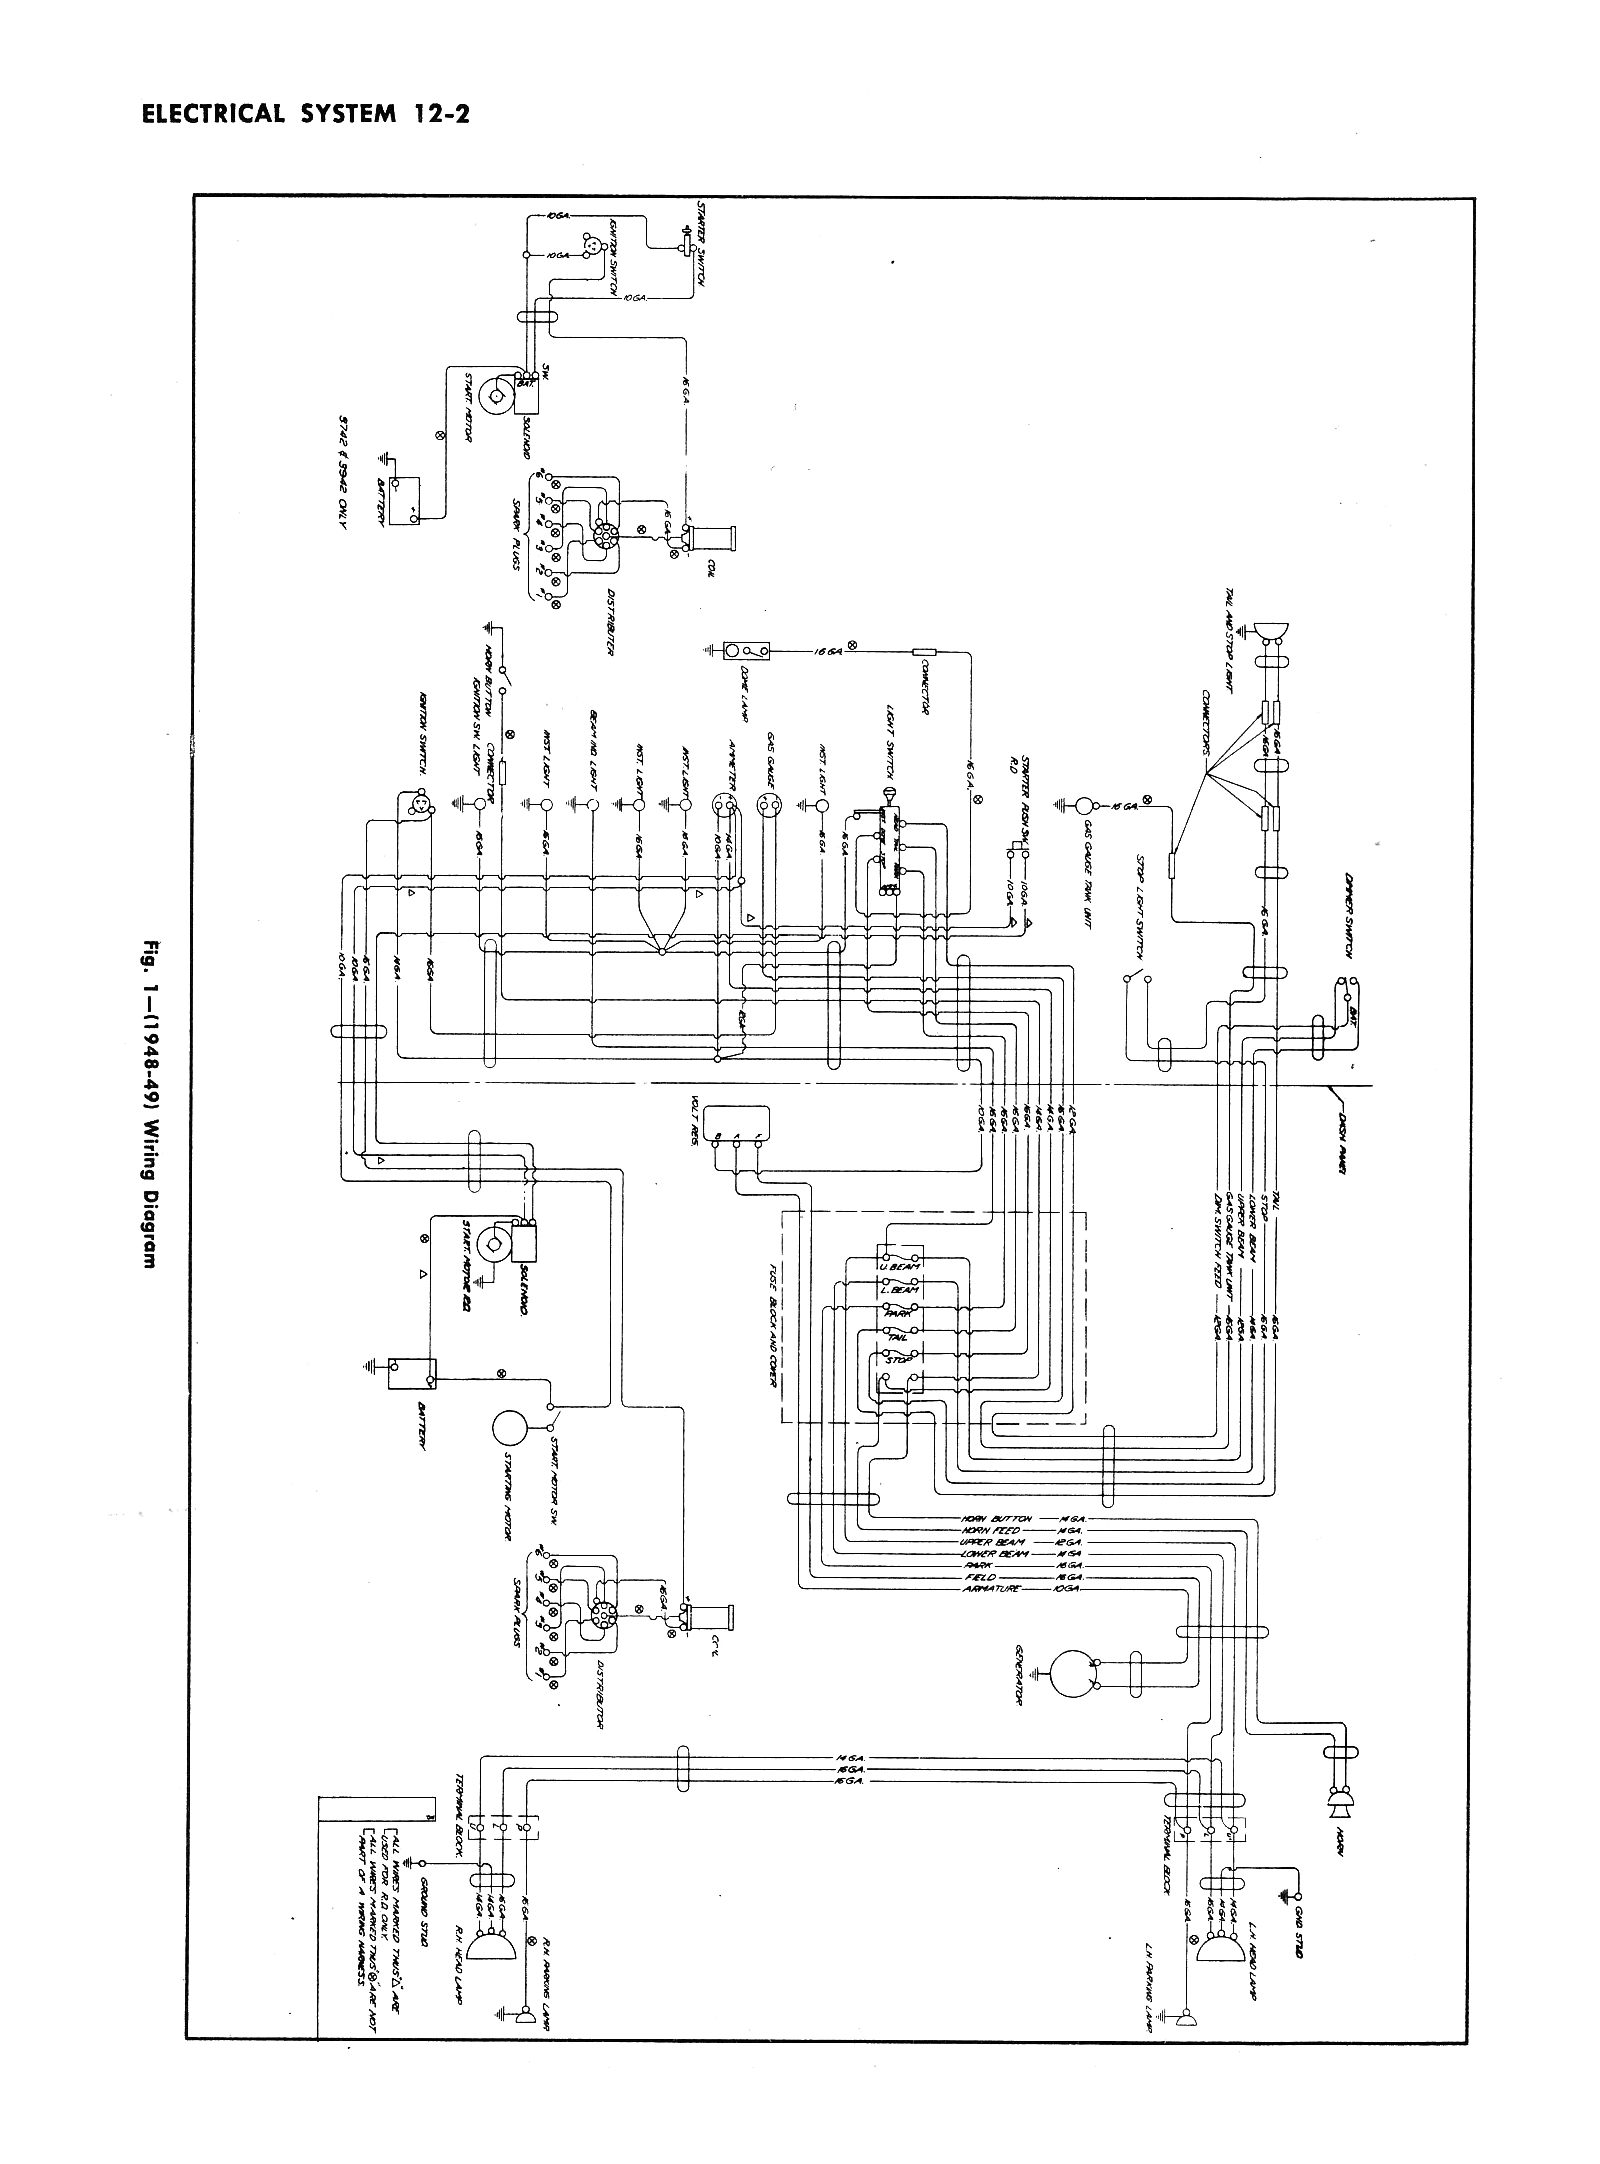 1952 Chevy Truck Wiring Diagram on 1951 studebaker wiring diagrams